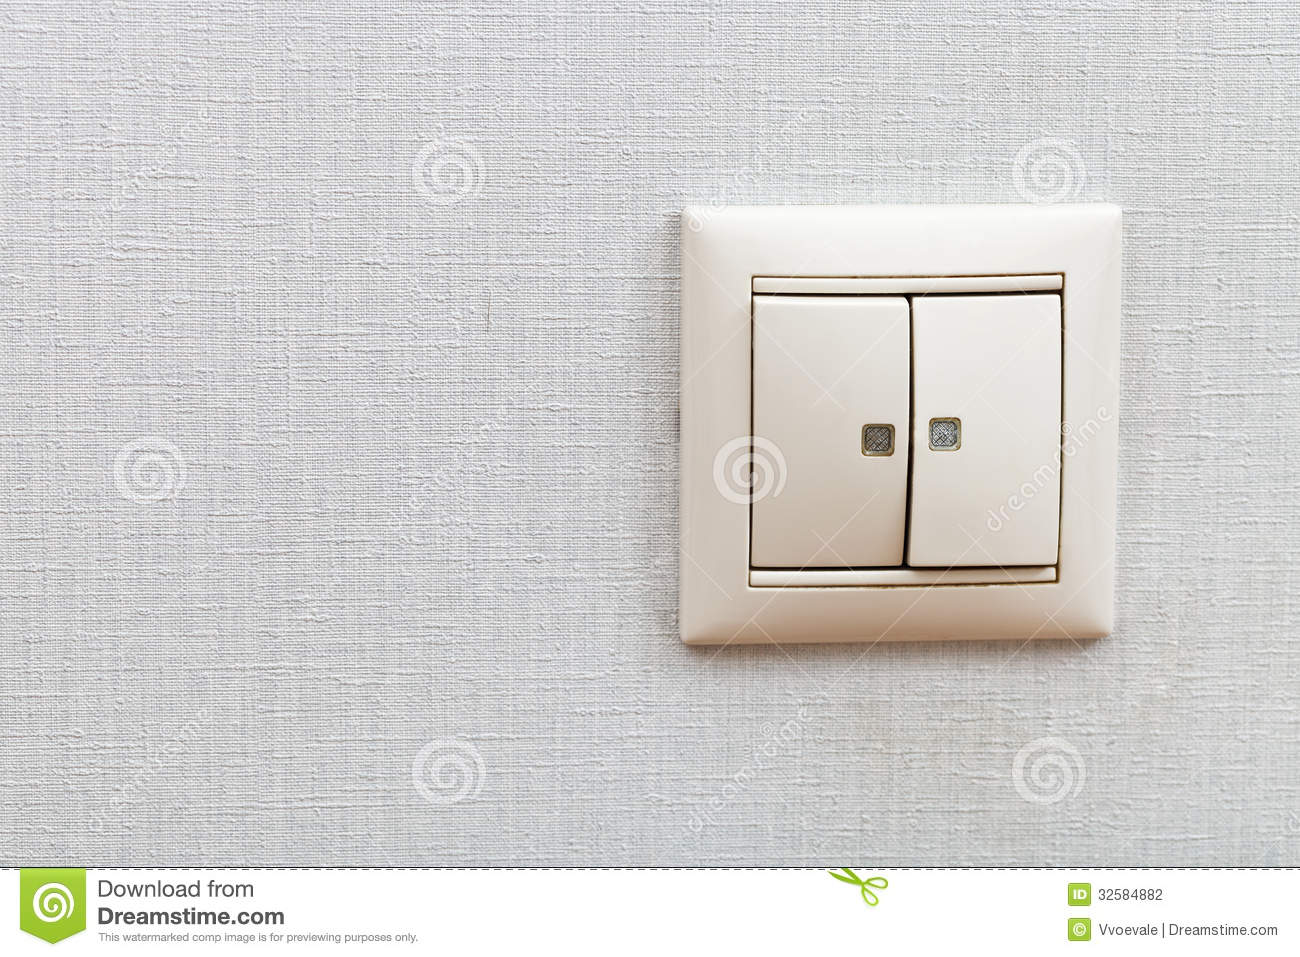 Light switch mounted on white wall stock image image of trunking wall mounted light switch stock photography aloadofball Choice Image